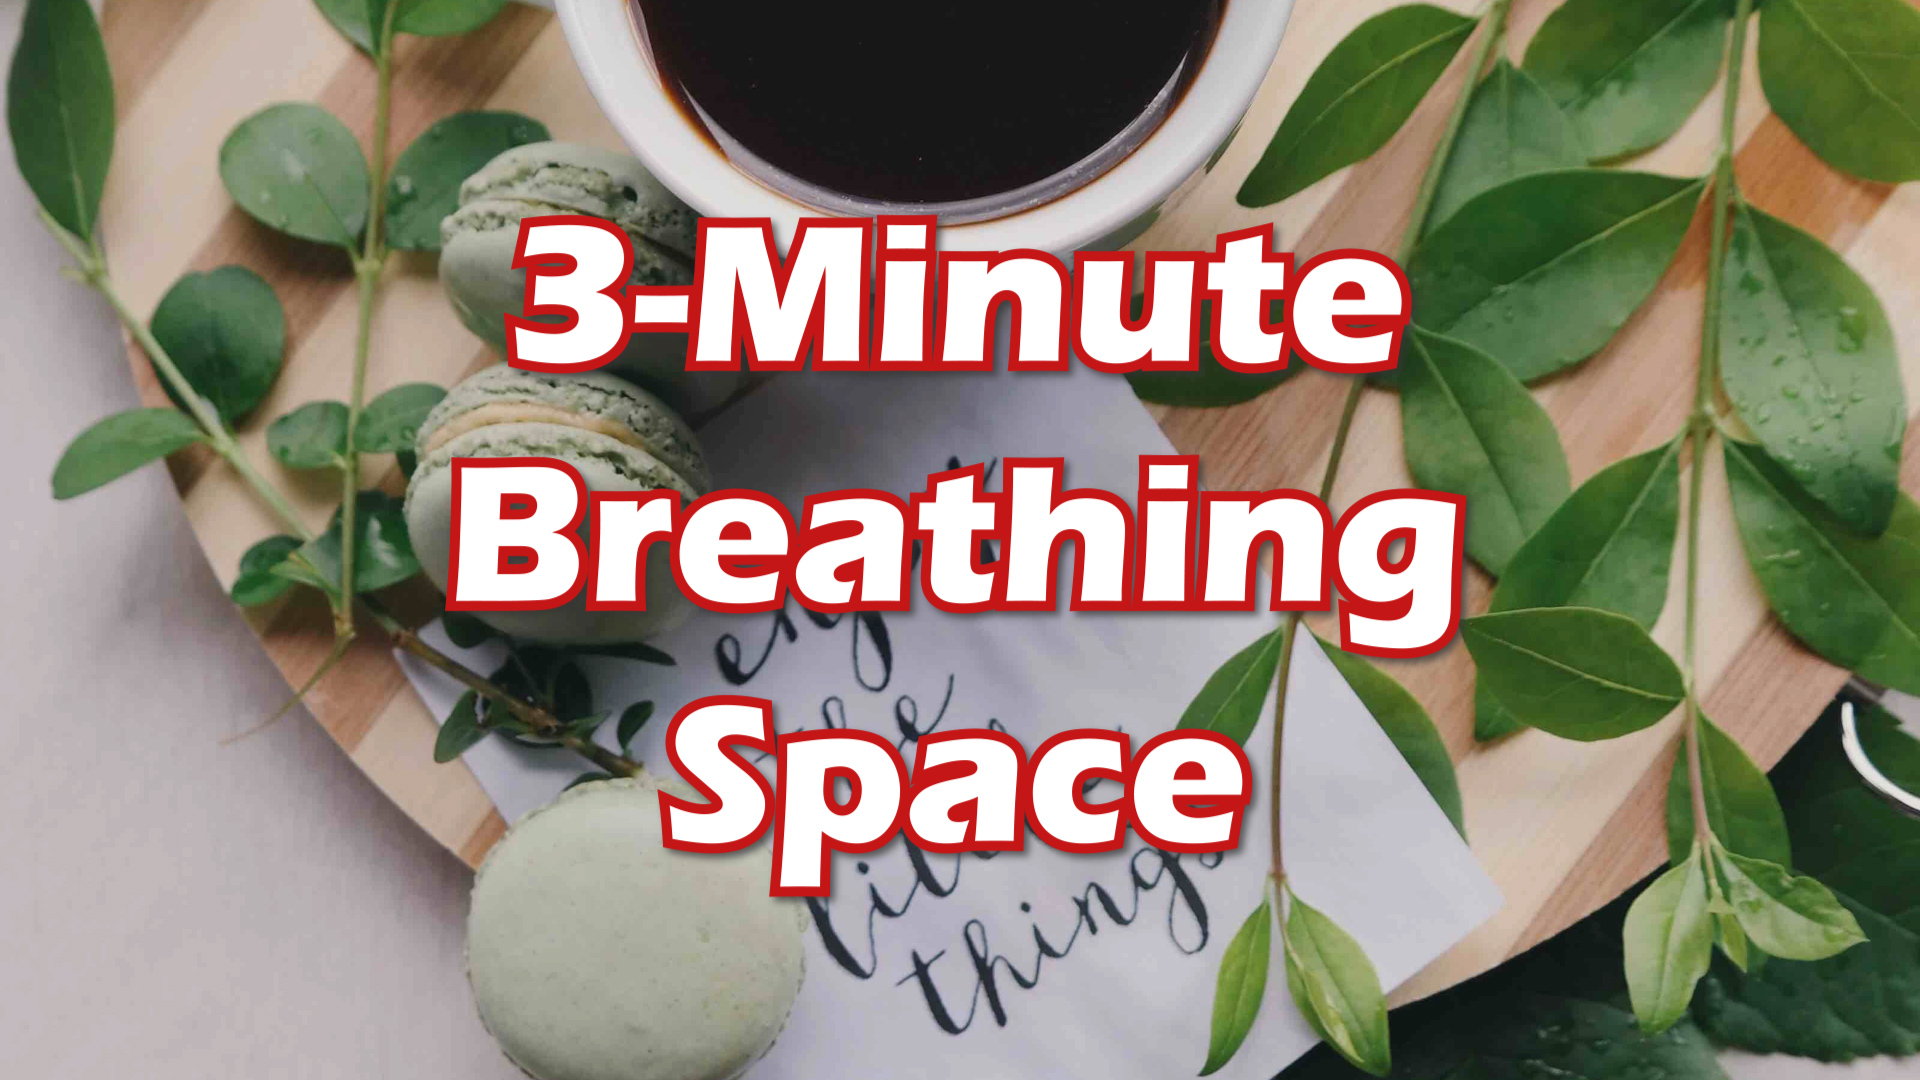 3-Minute Breathing Space thumbnail